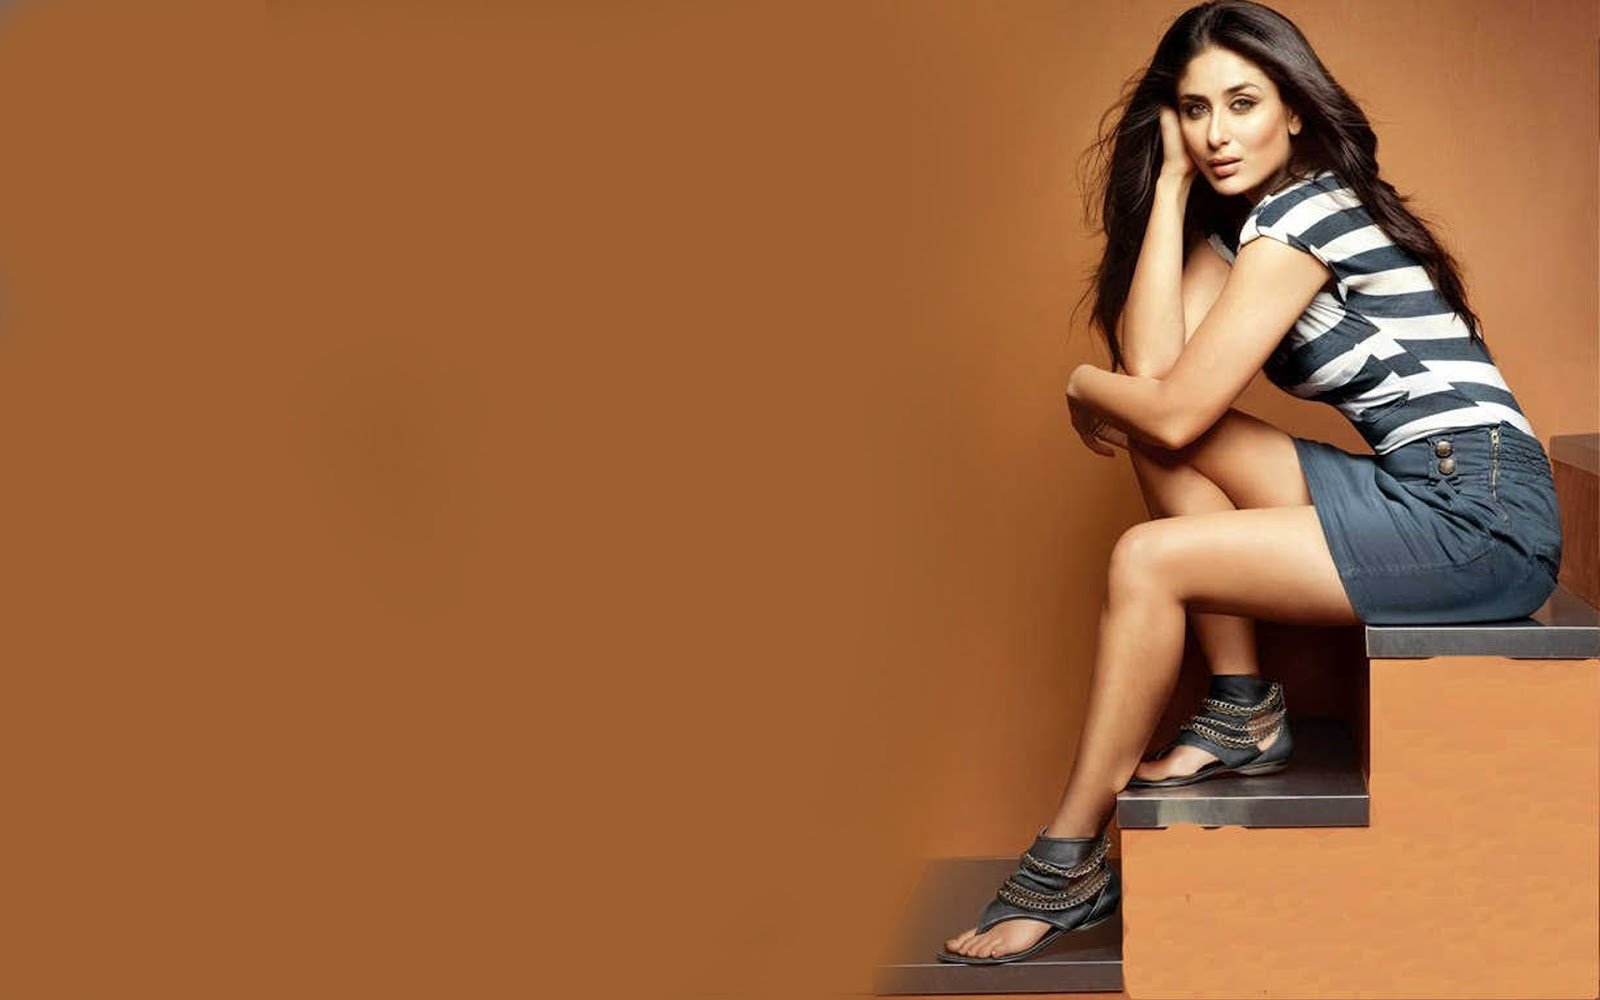 kareena kapoor images download